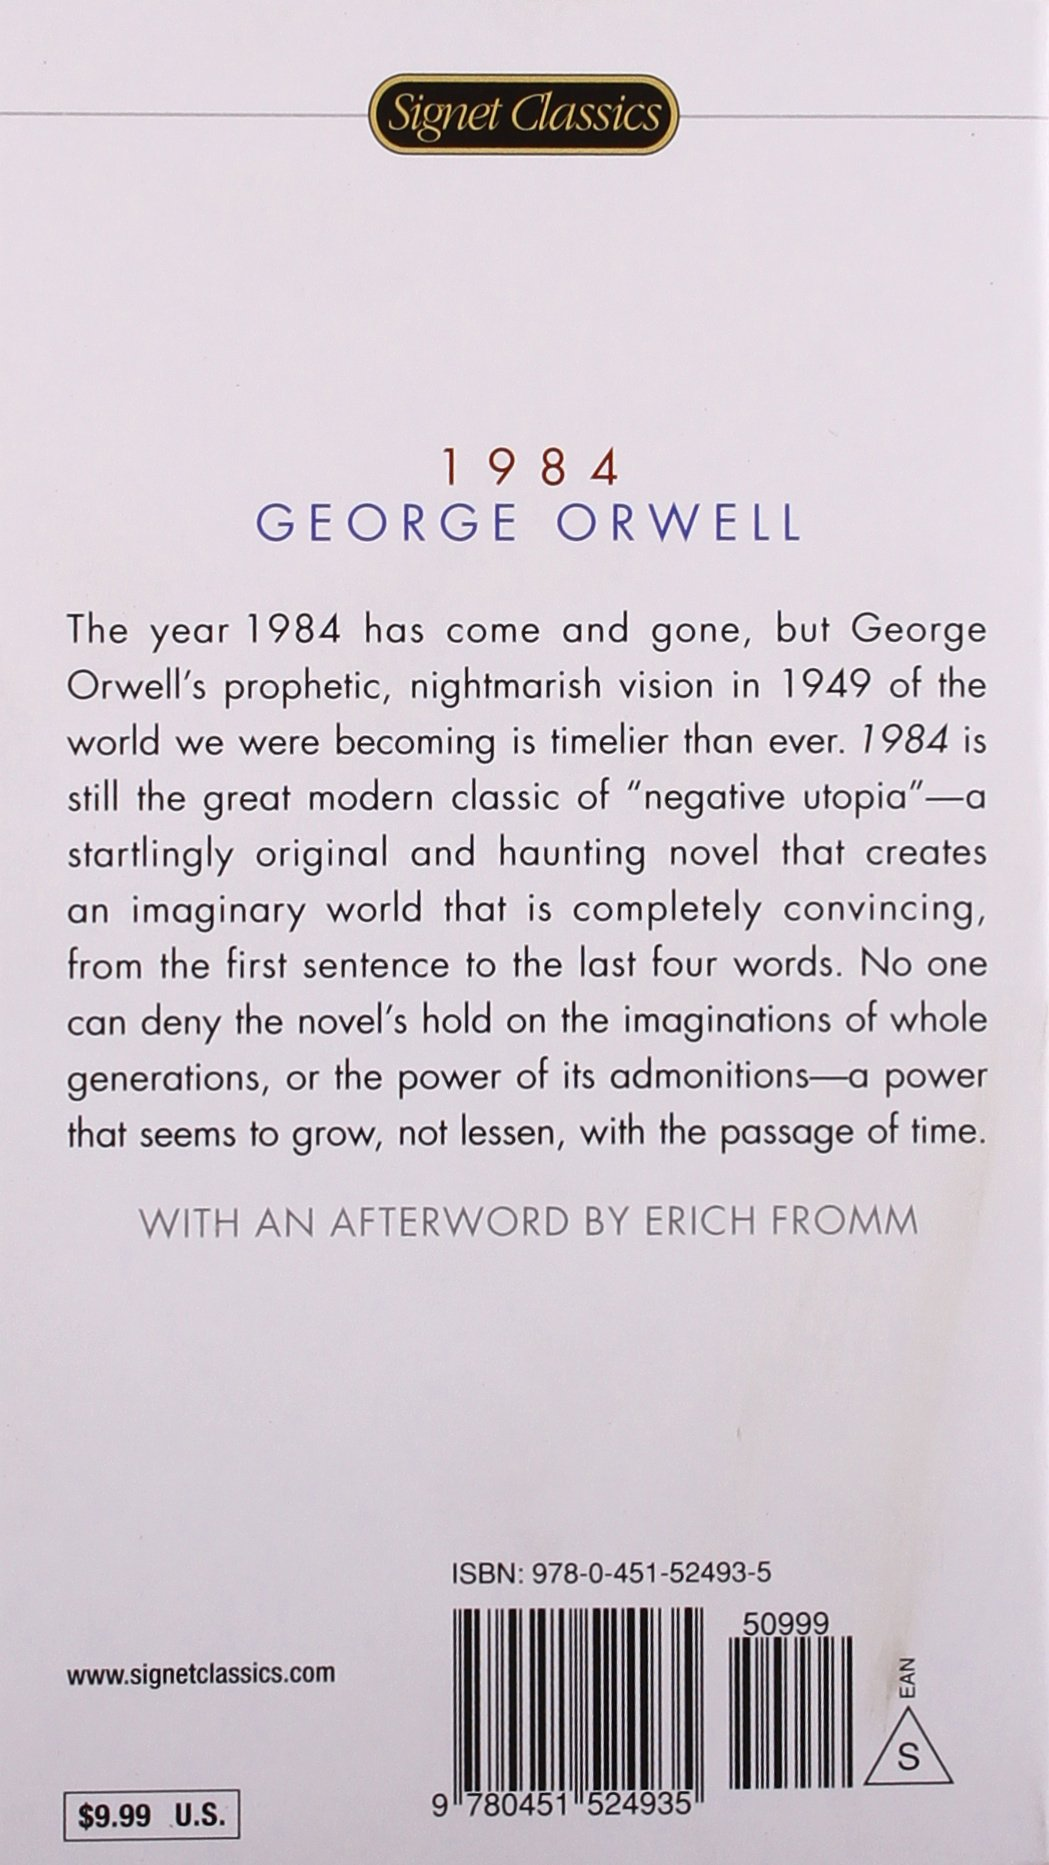 george orwell short stories and essays Marrakech, the essay of george orwell first published: christmas 1939 by/in new writing, gb, london index  library  articles  marrakech  english  e-text  wailing a short chant over and over again what really appeals to the flies is that the corpses here are never put into coffins, they are merely wrapped in a piece of rag and.